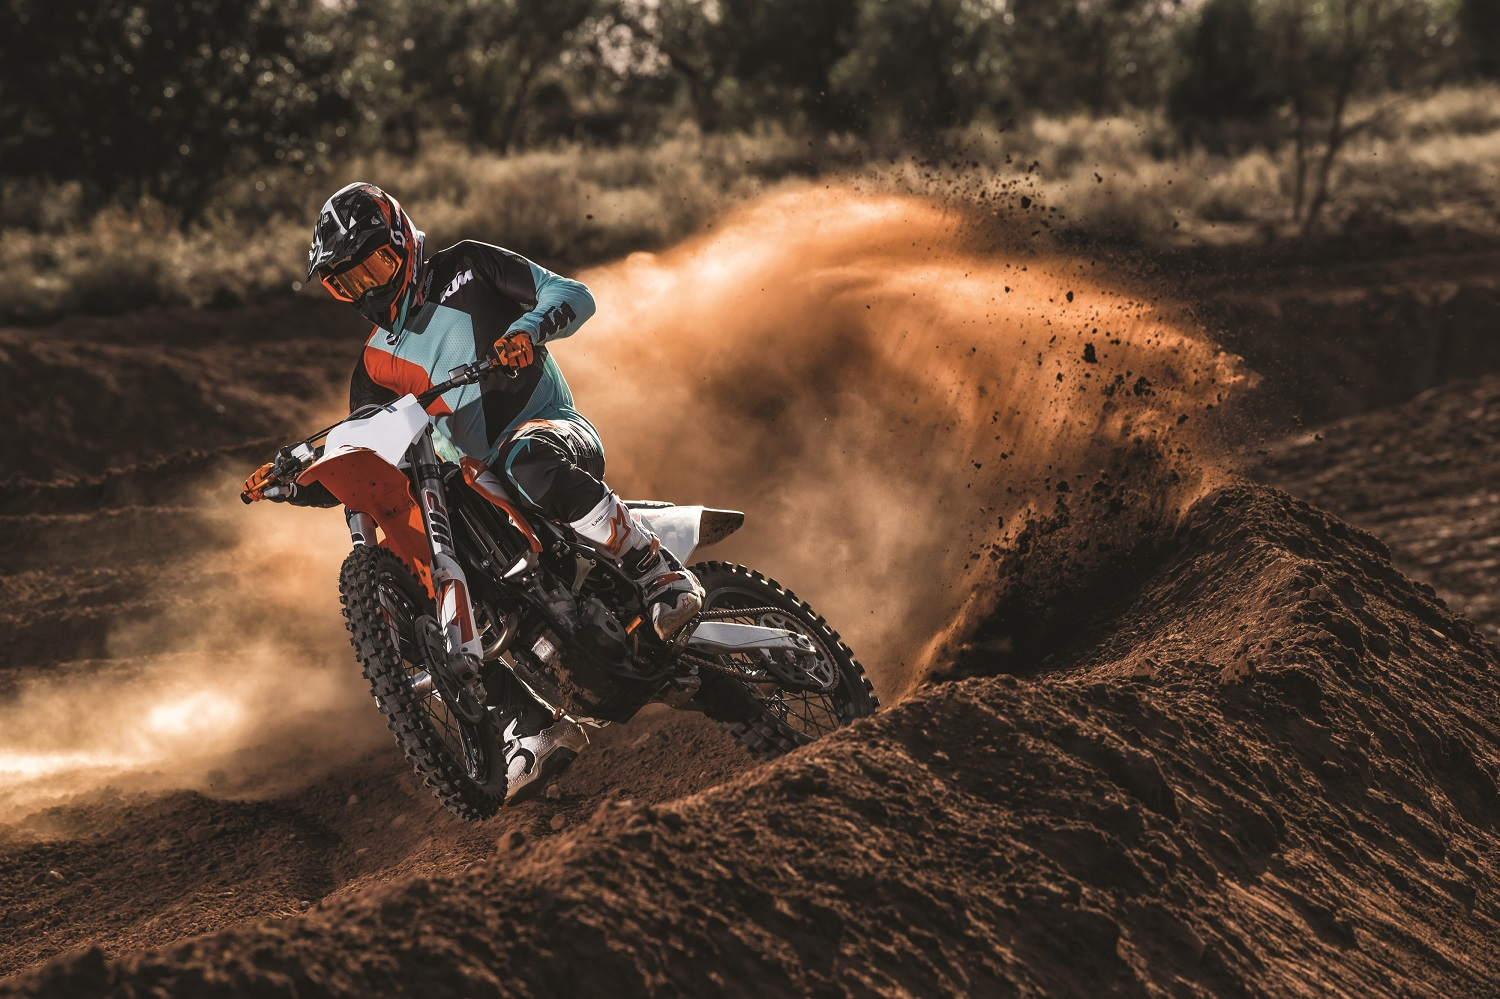 06_Action_KTM 250 SX-F MY2019